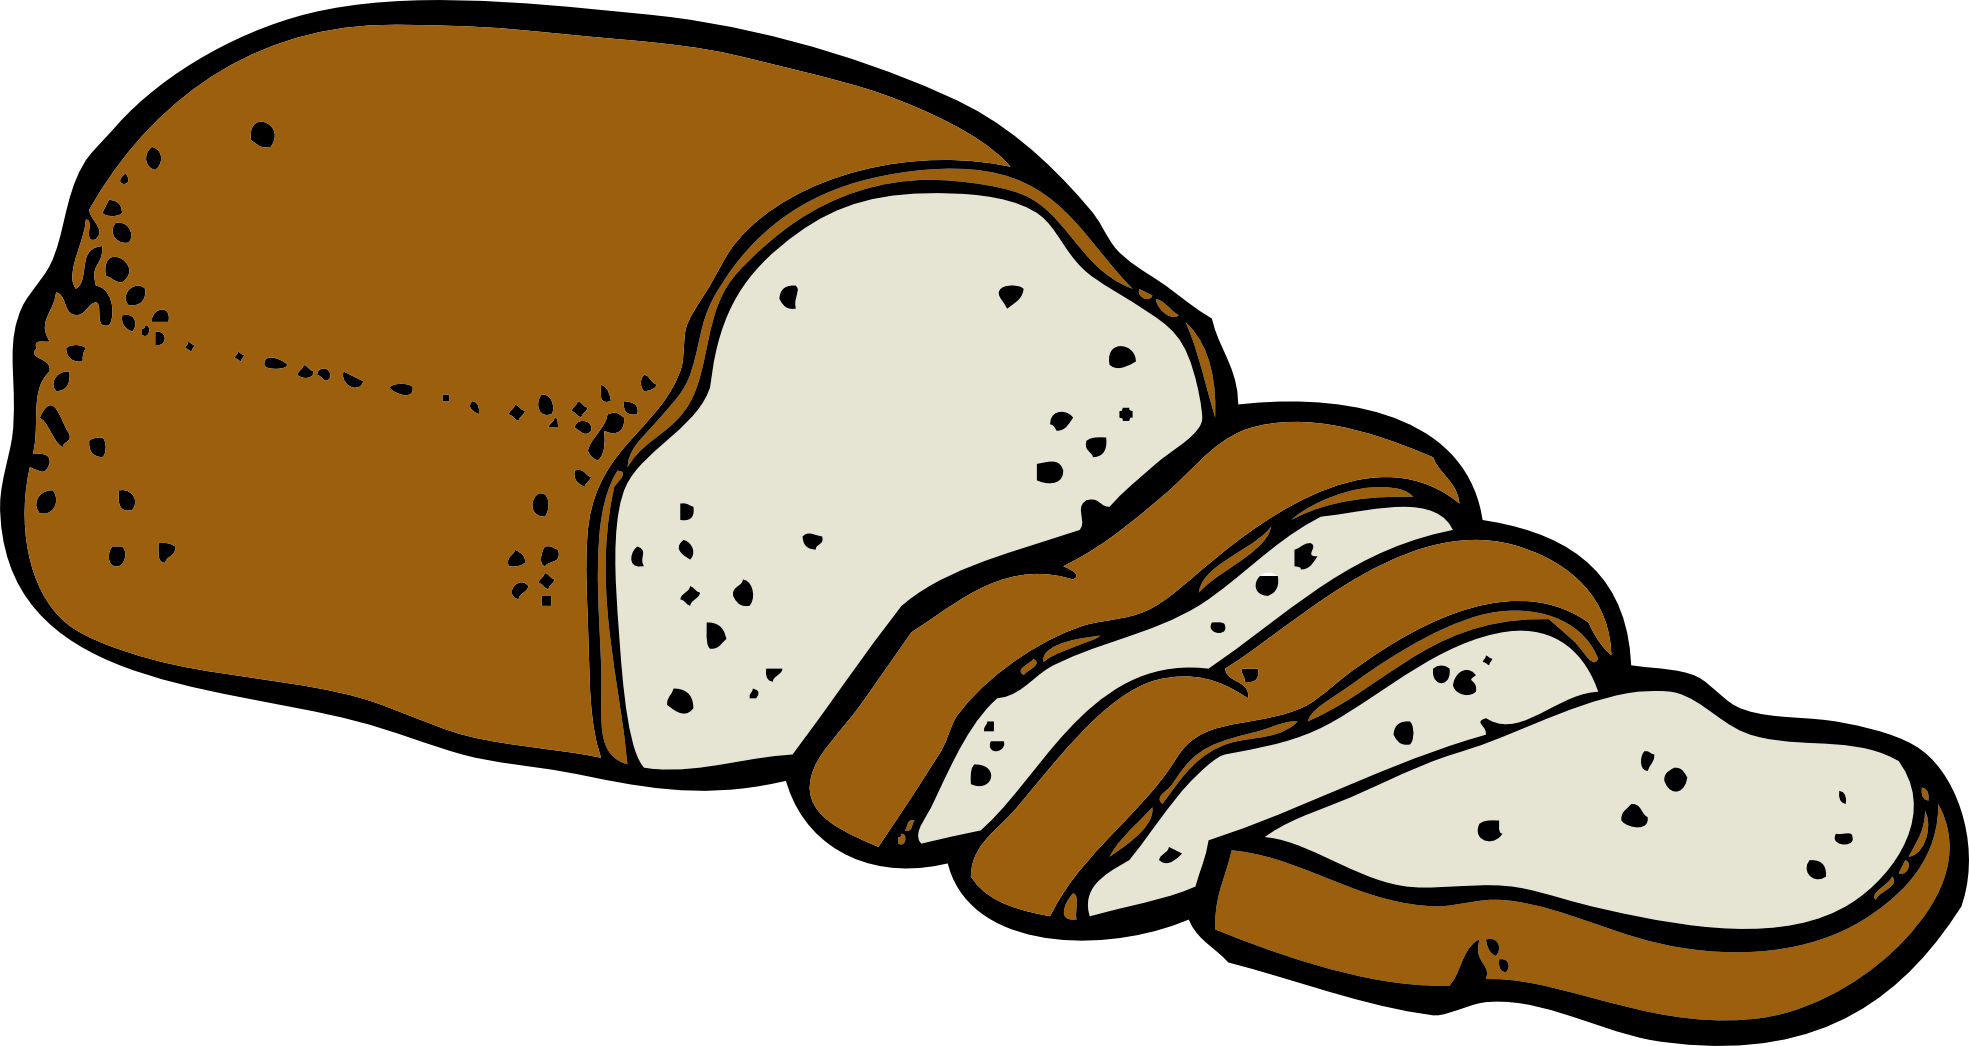 1969x1046 Cereal Clipart Loaf Bread